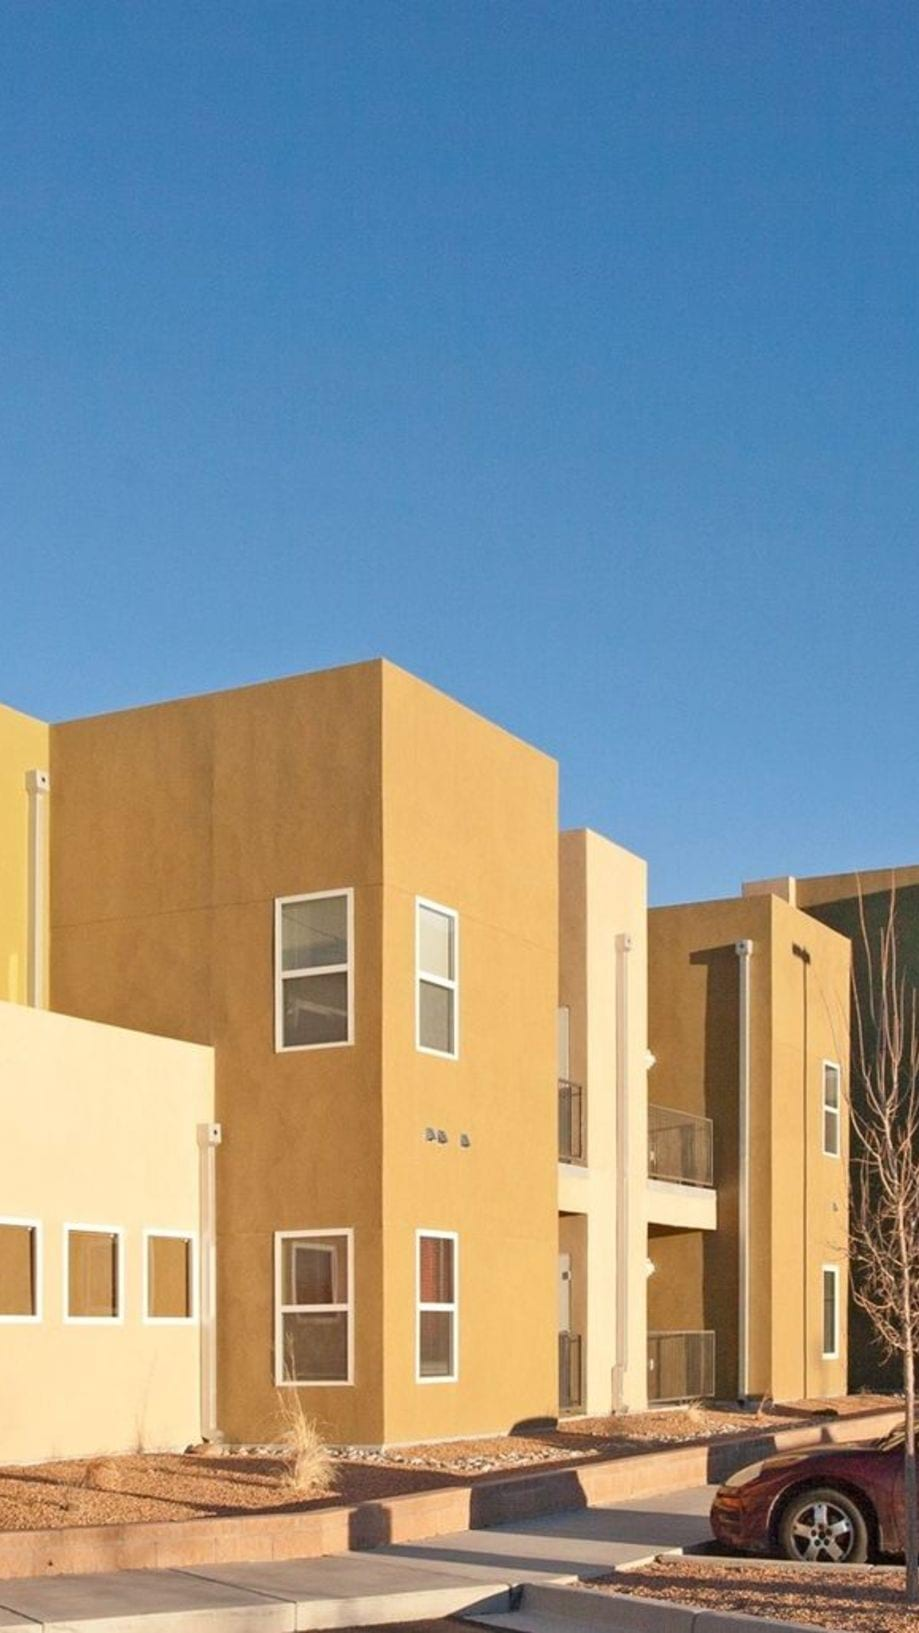 Apartments for Rent in Santa Fe, NM | San Isidro - Home